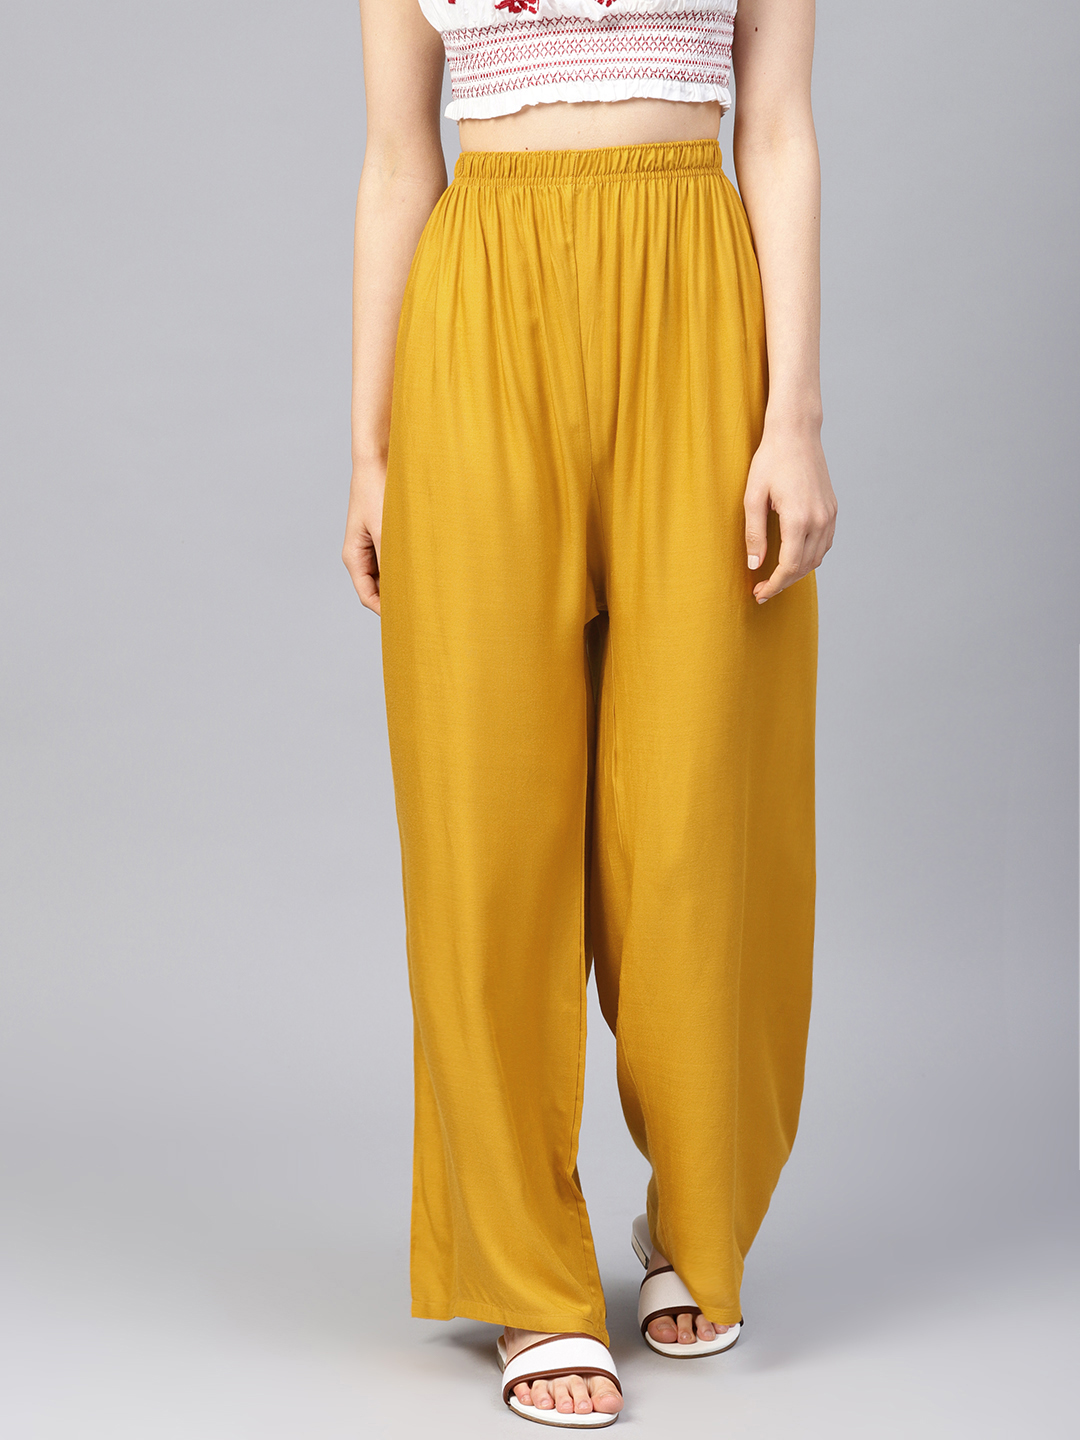 Jompers | Jompers Women Mustard Solid Straight Palazzos